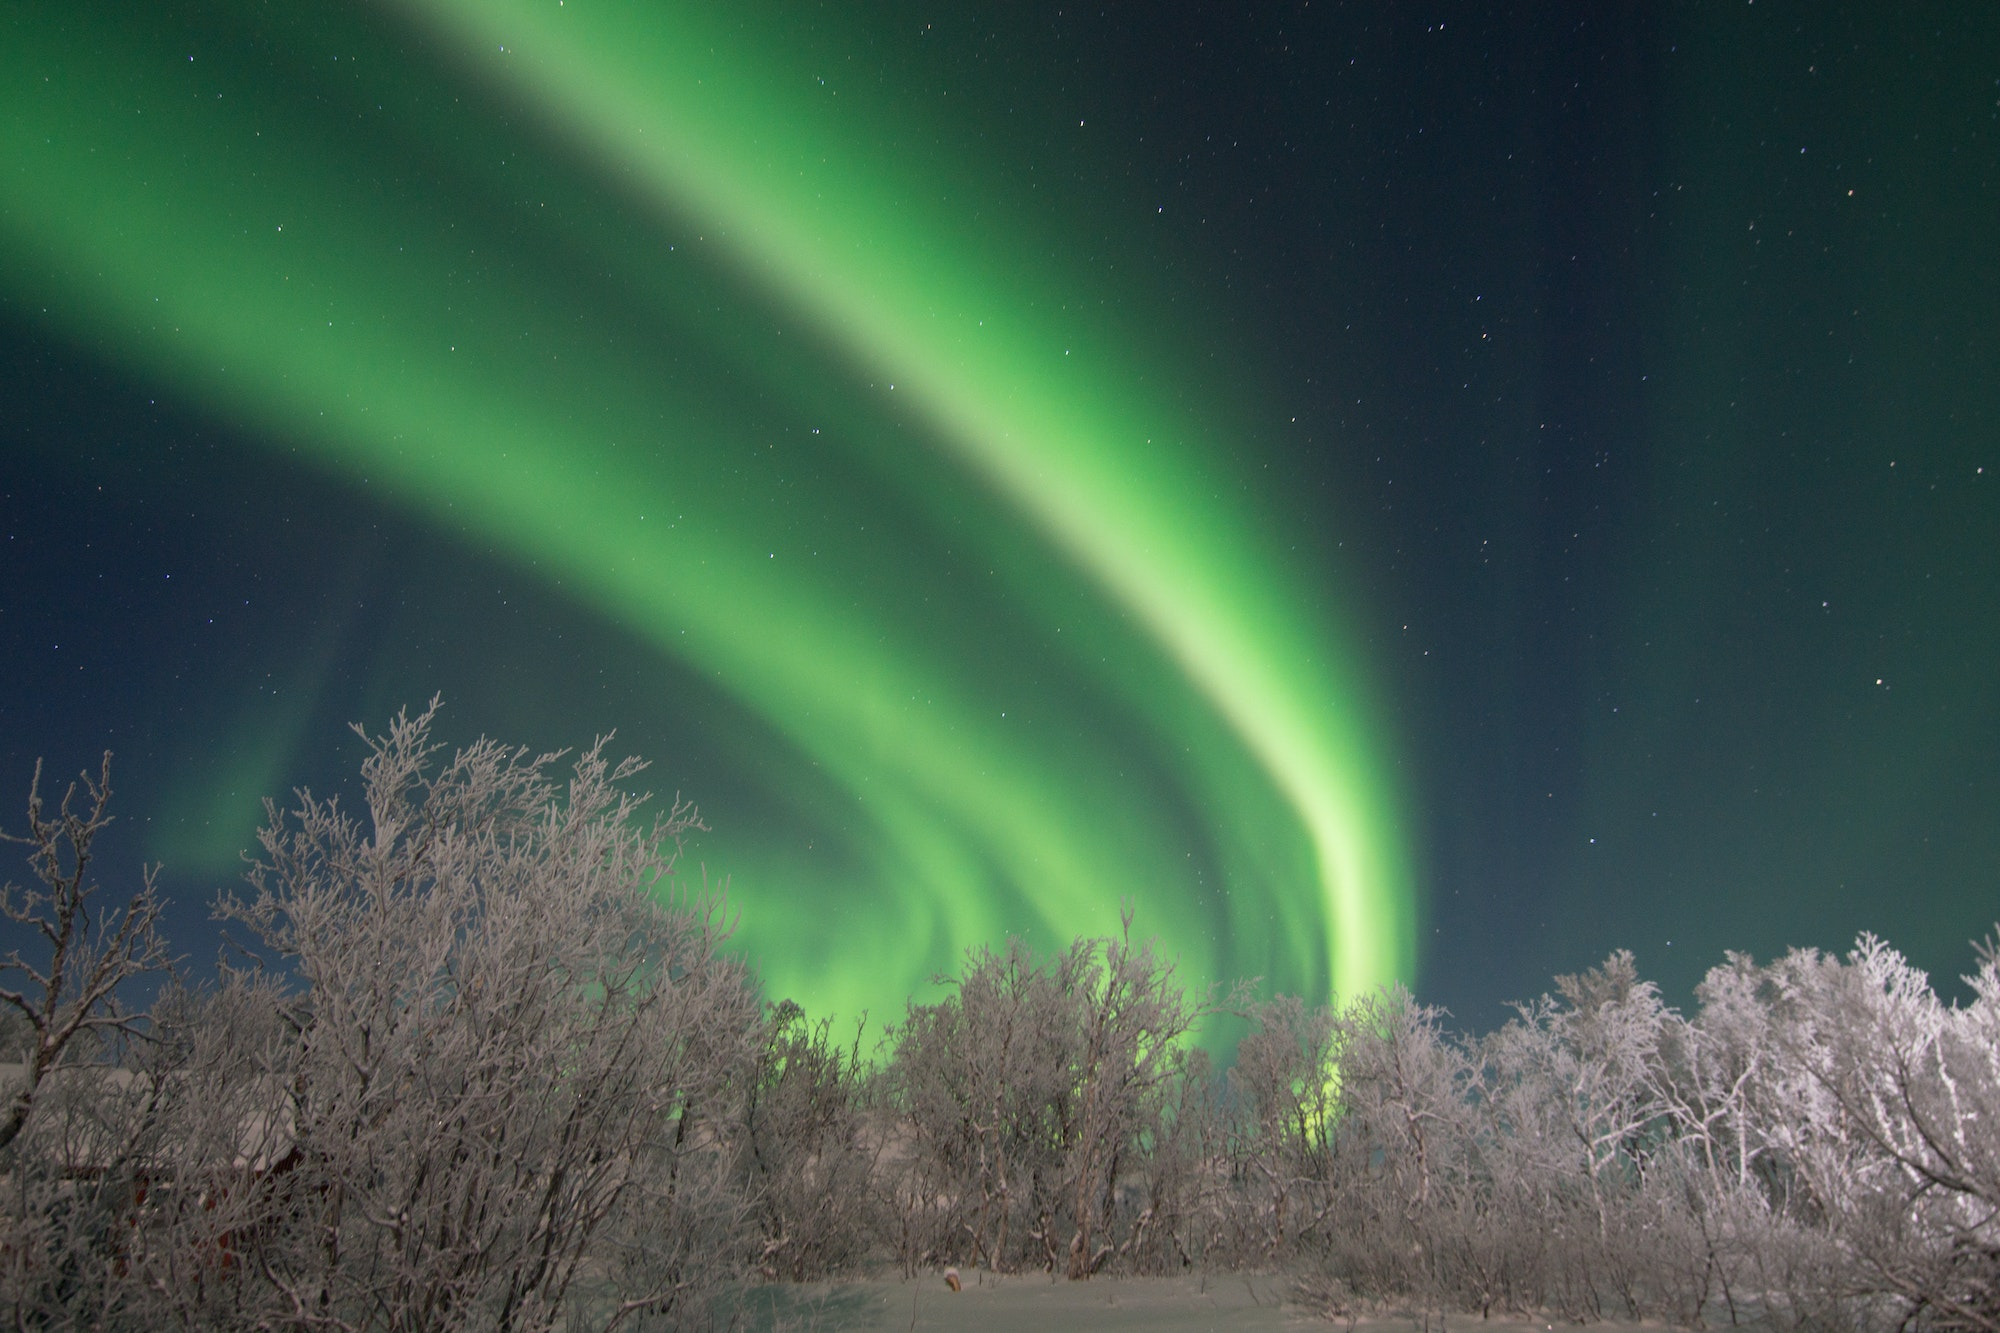 Northern lights sightings are most likely during the hours around midnight.